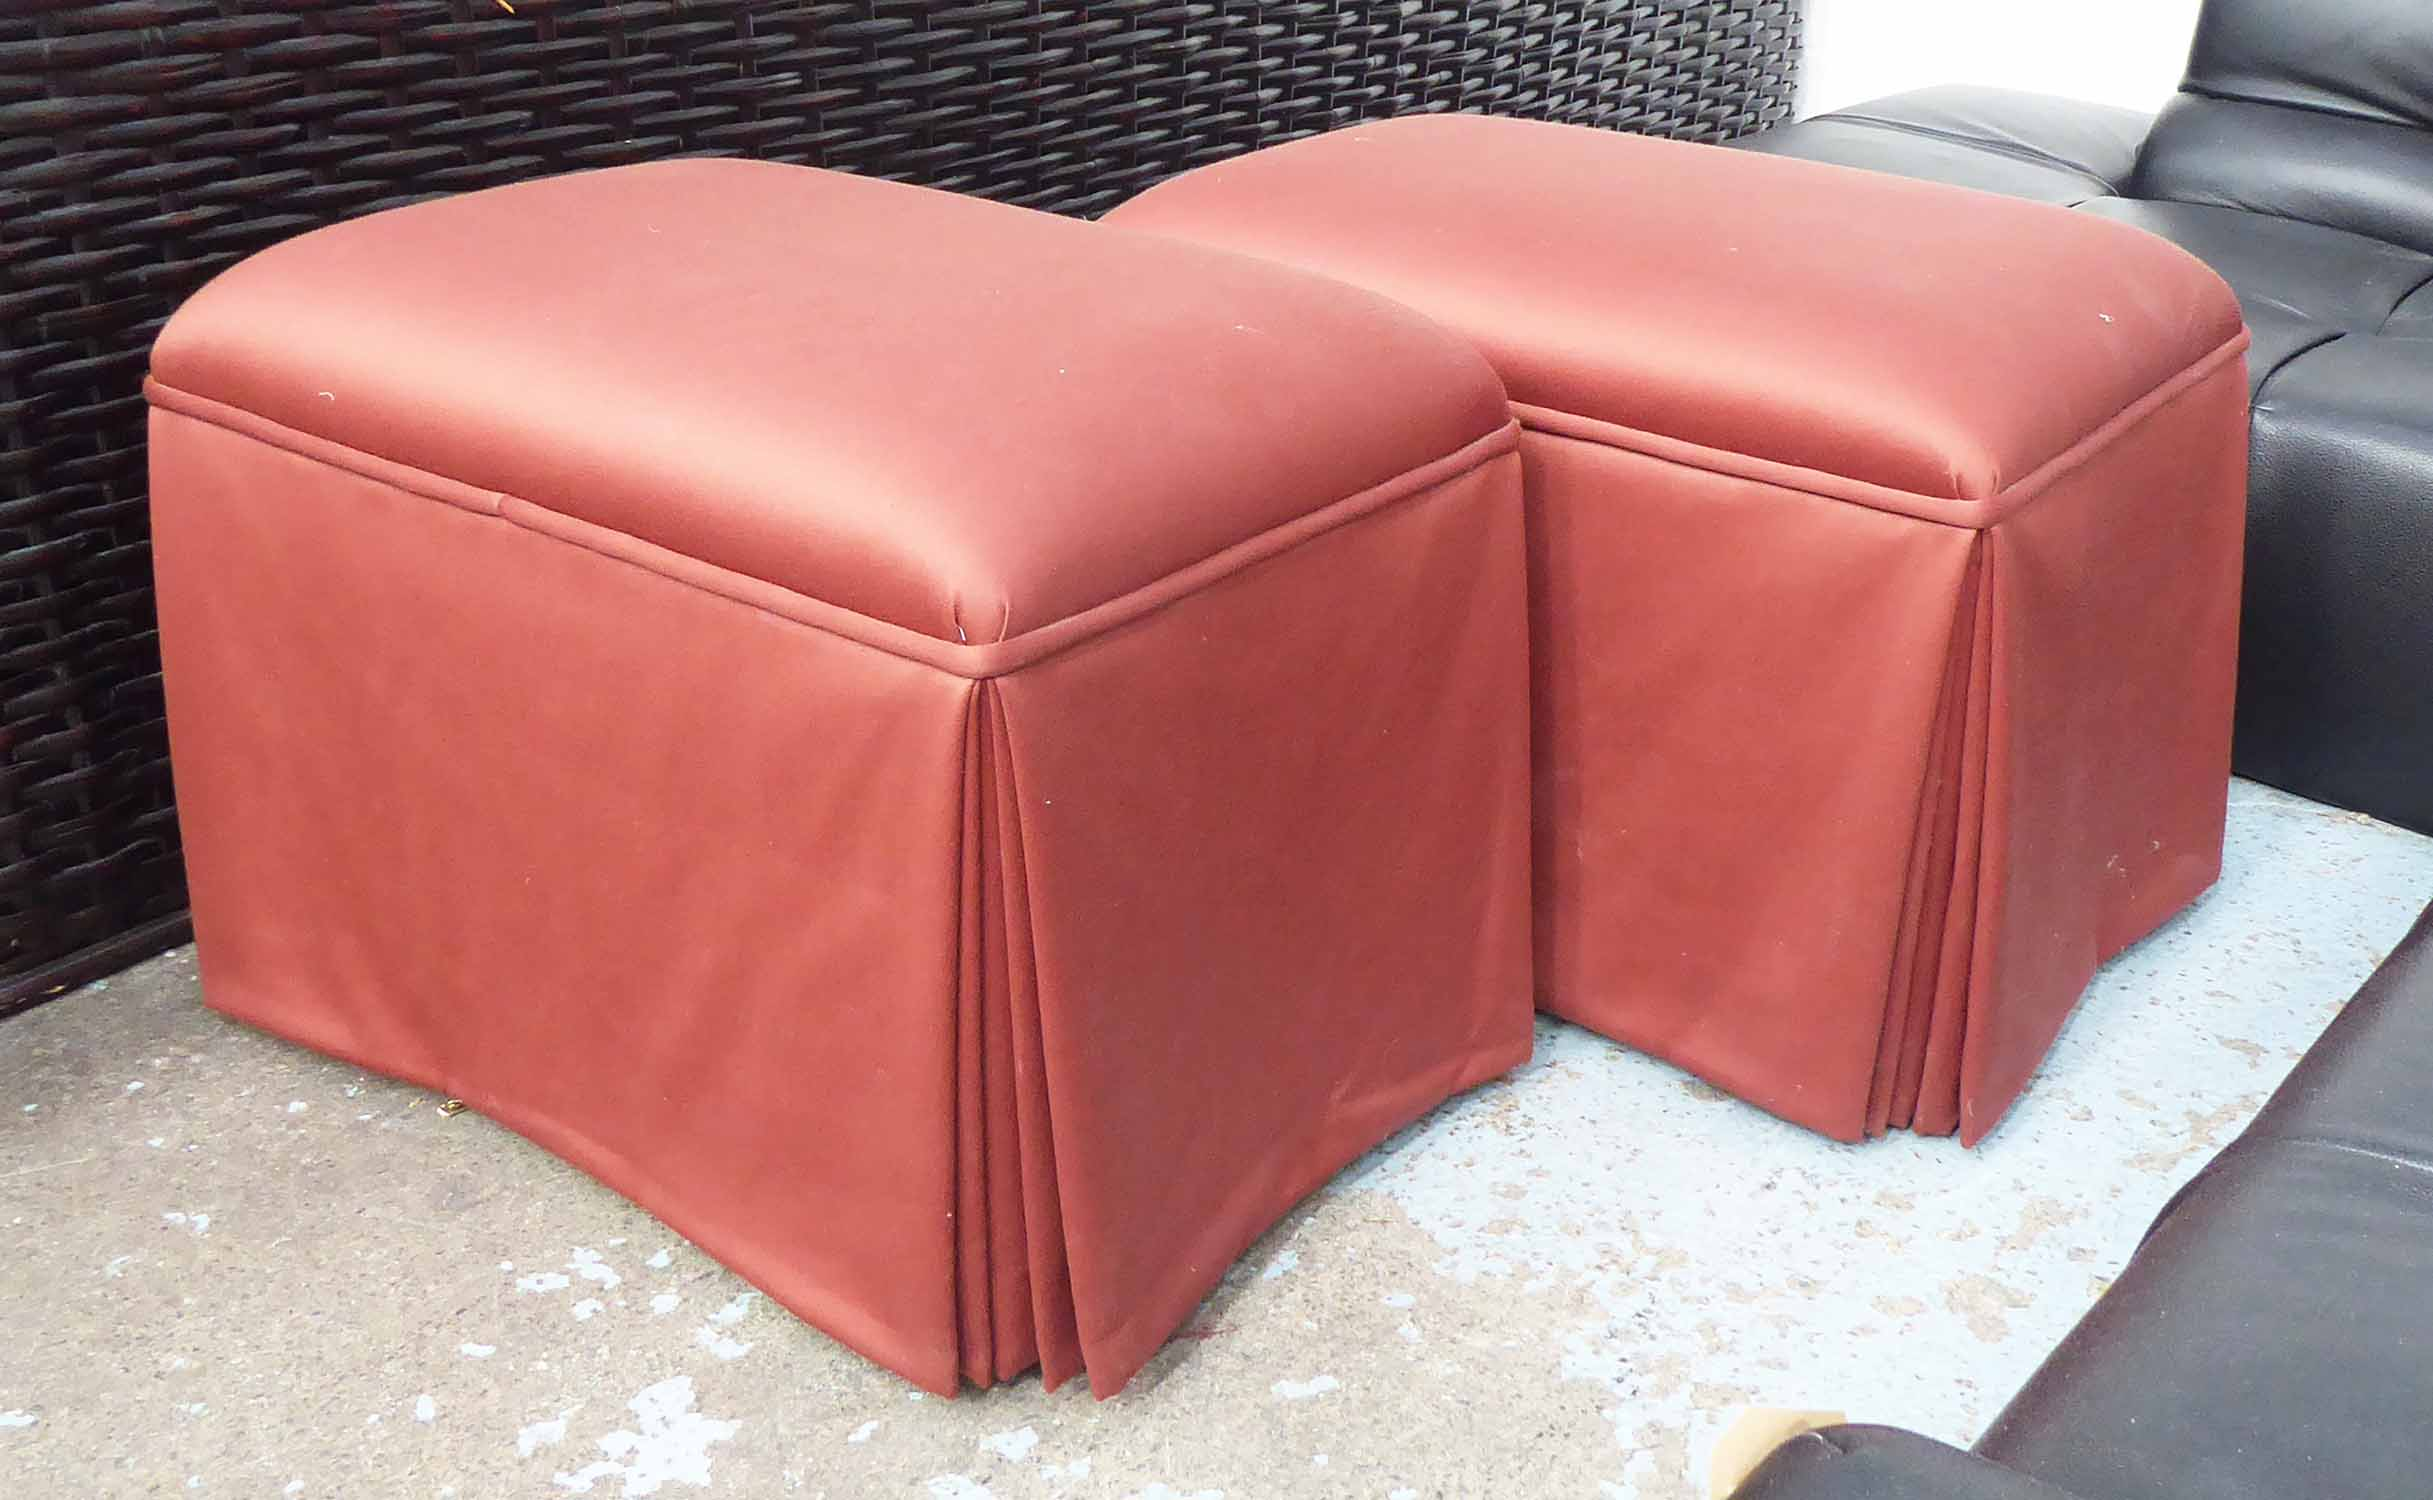 Lot 29 - J ROBERT SCOTT SUSIE SKIRTED OTTOMANS, a pair, by Sally Sirkin Lewis, 77cm x 51cm x 51cm.